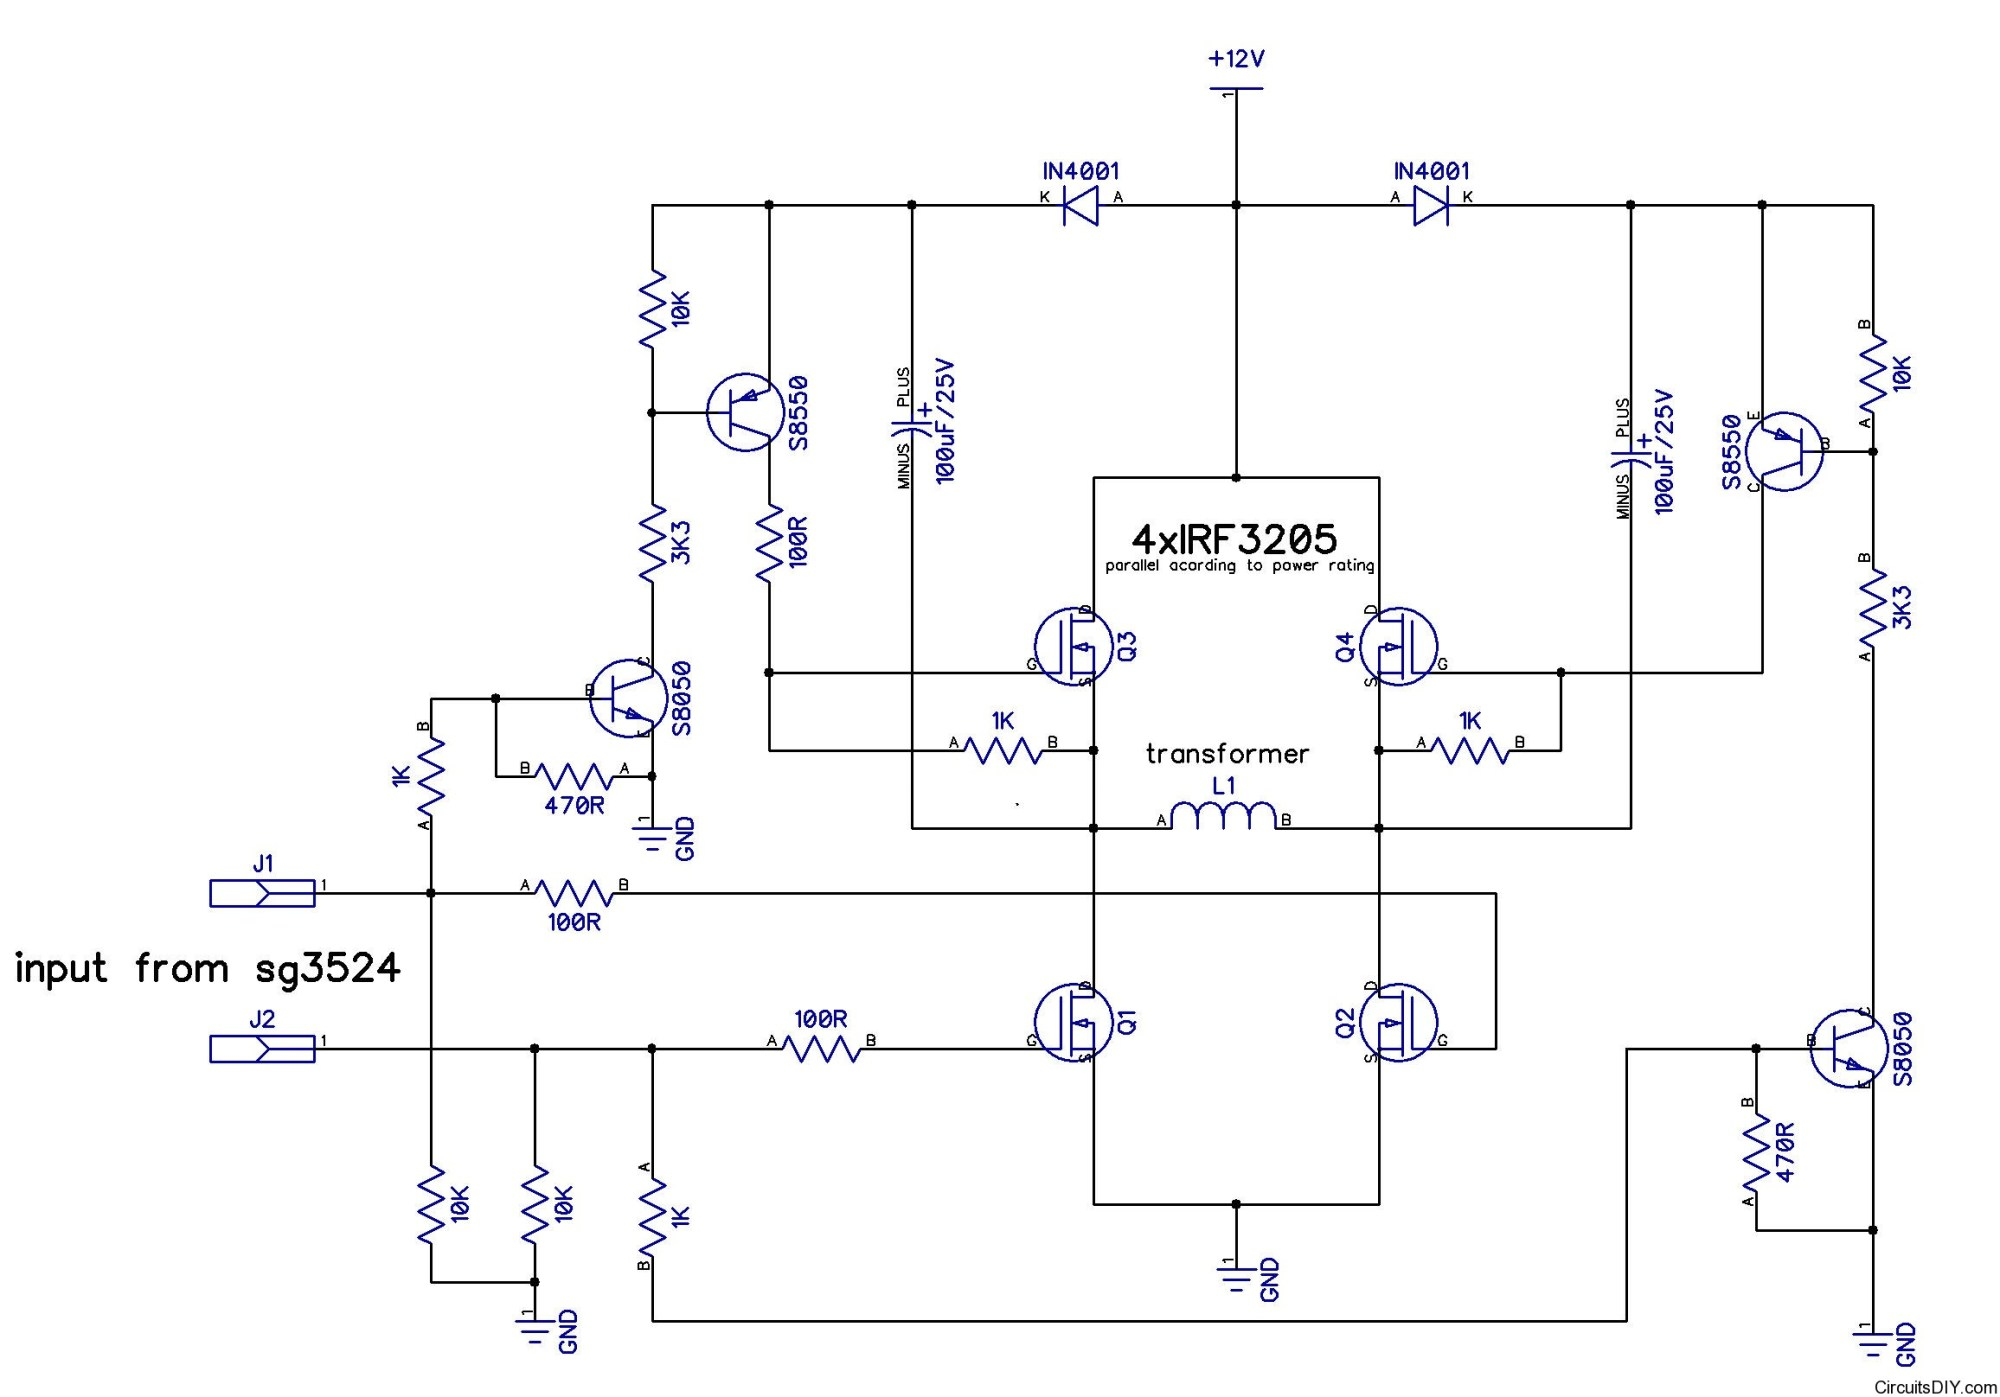 hight resolution of h bridge inverter power stage with passives circuits diy have a simple hbridge circuit set up following this schematic